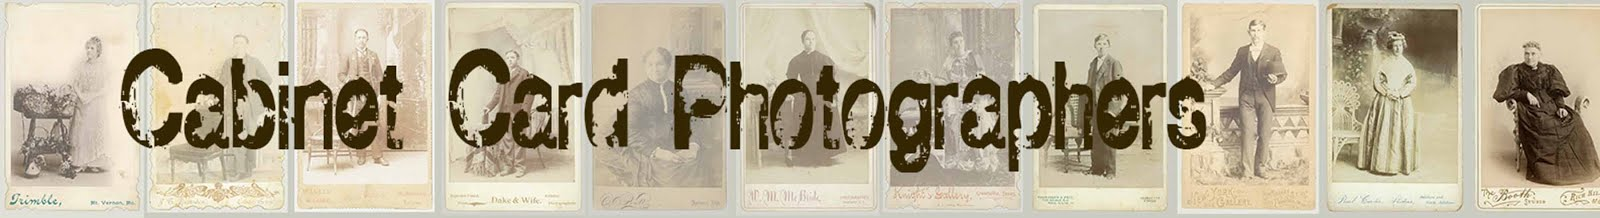 Cabinet Card Photographers